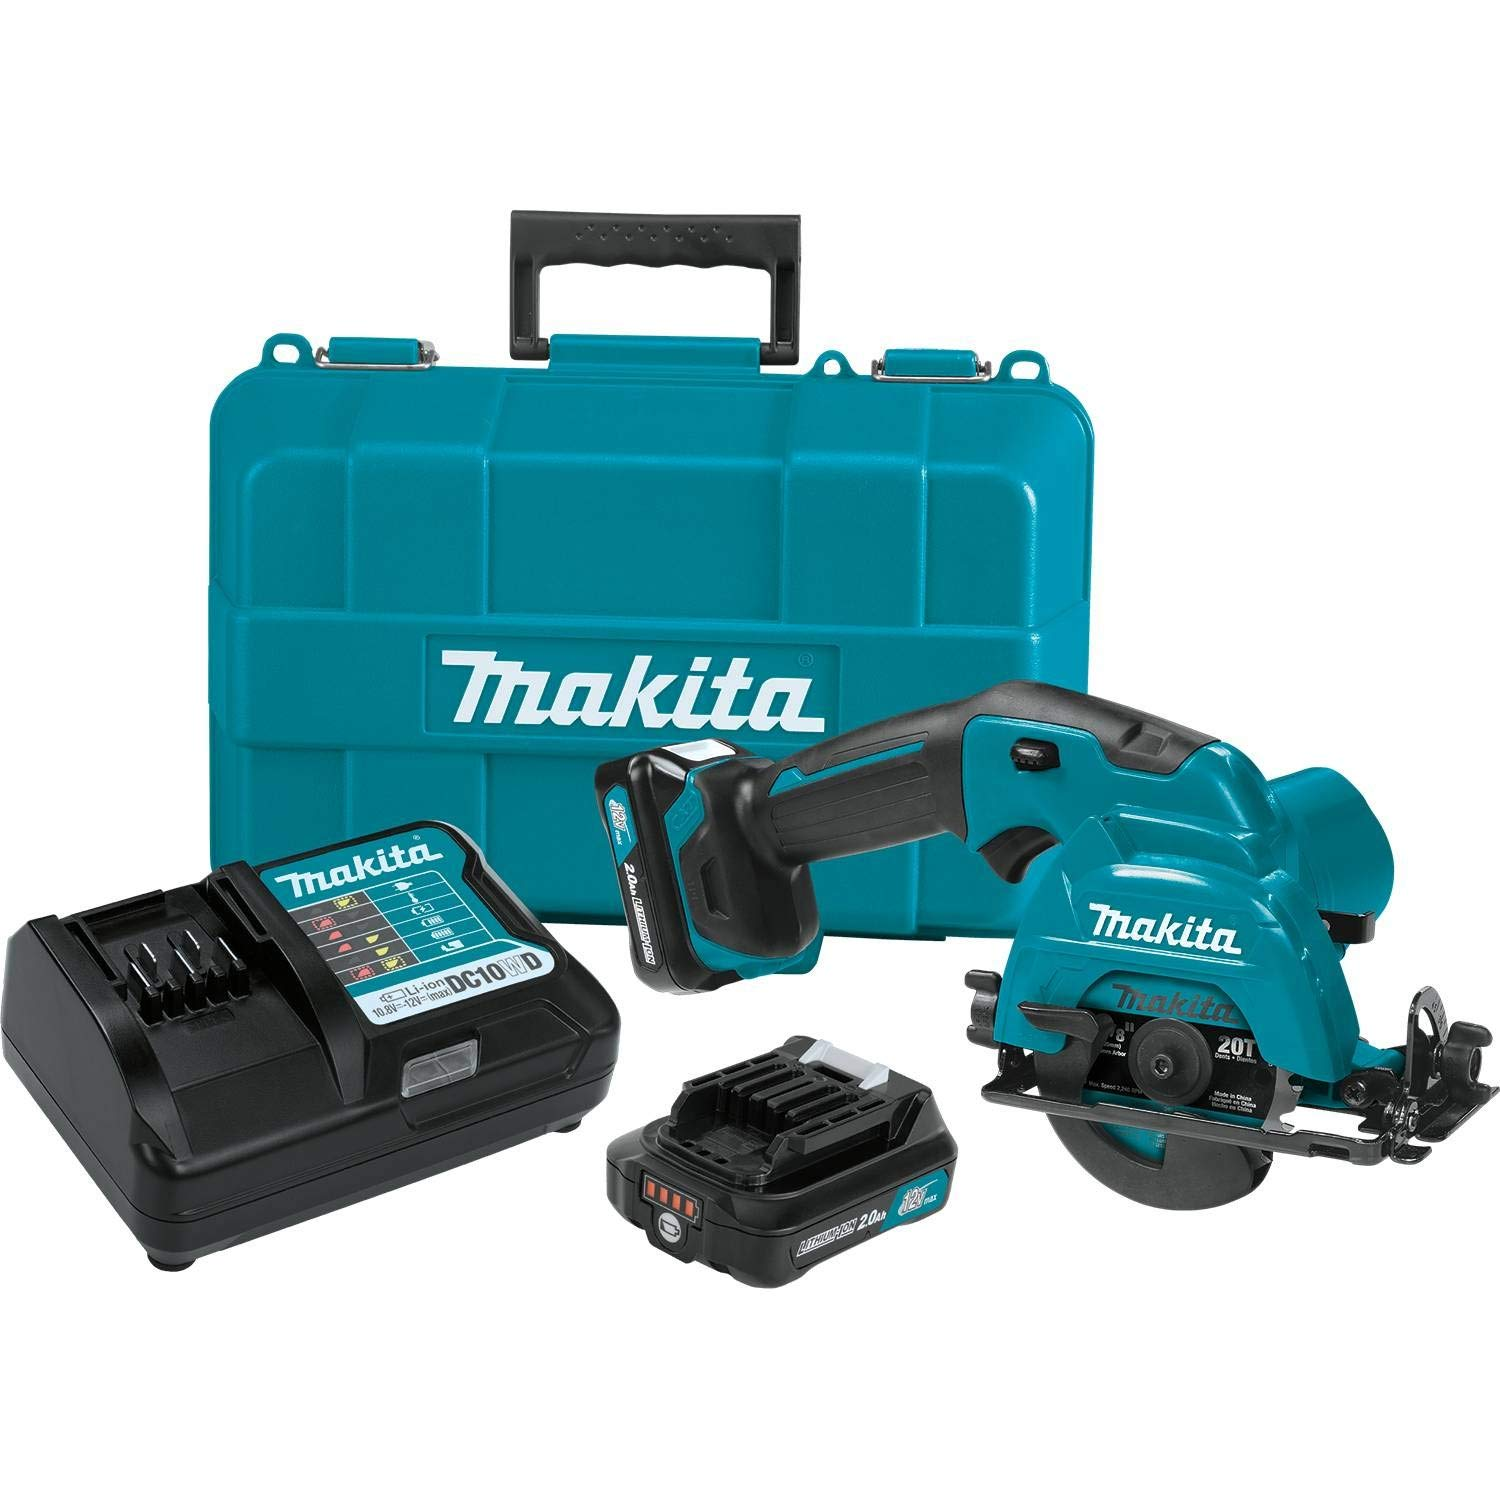 #3 - Makita SH02R1 12V Max CXT Lithium-Ion Cordless Circular Saw Kit, 3-3/8""